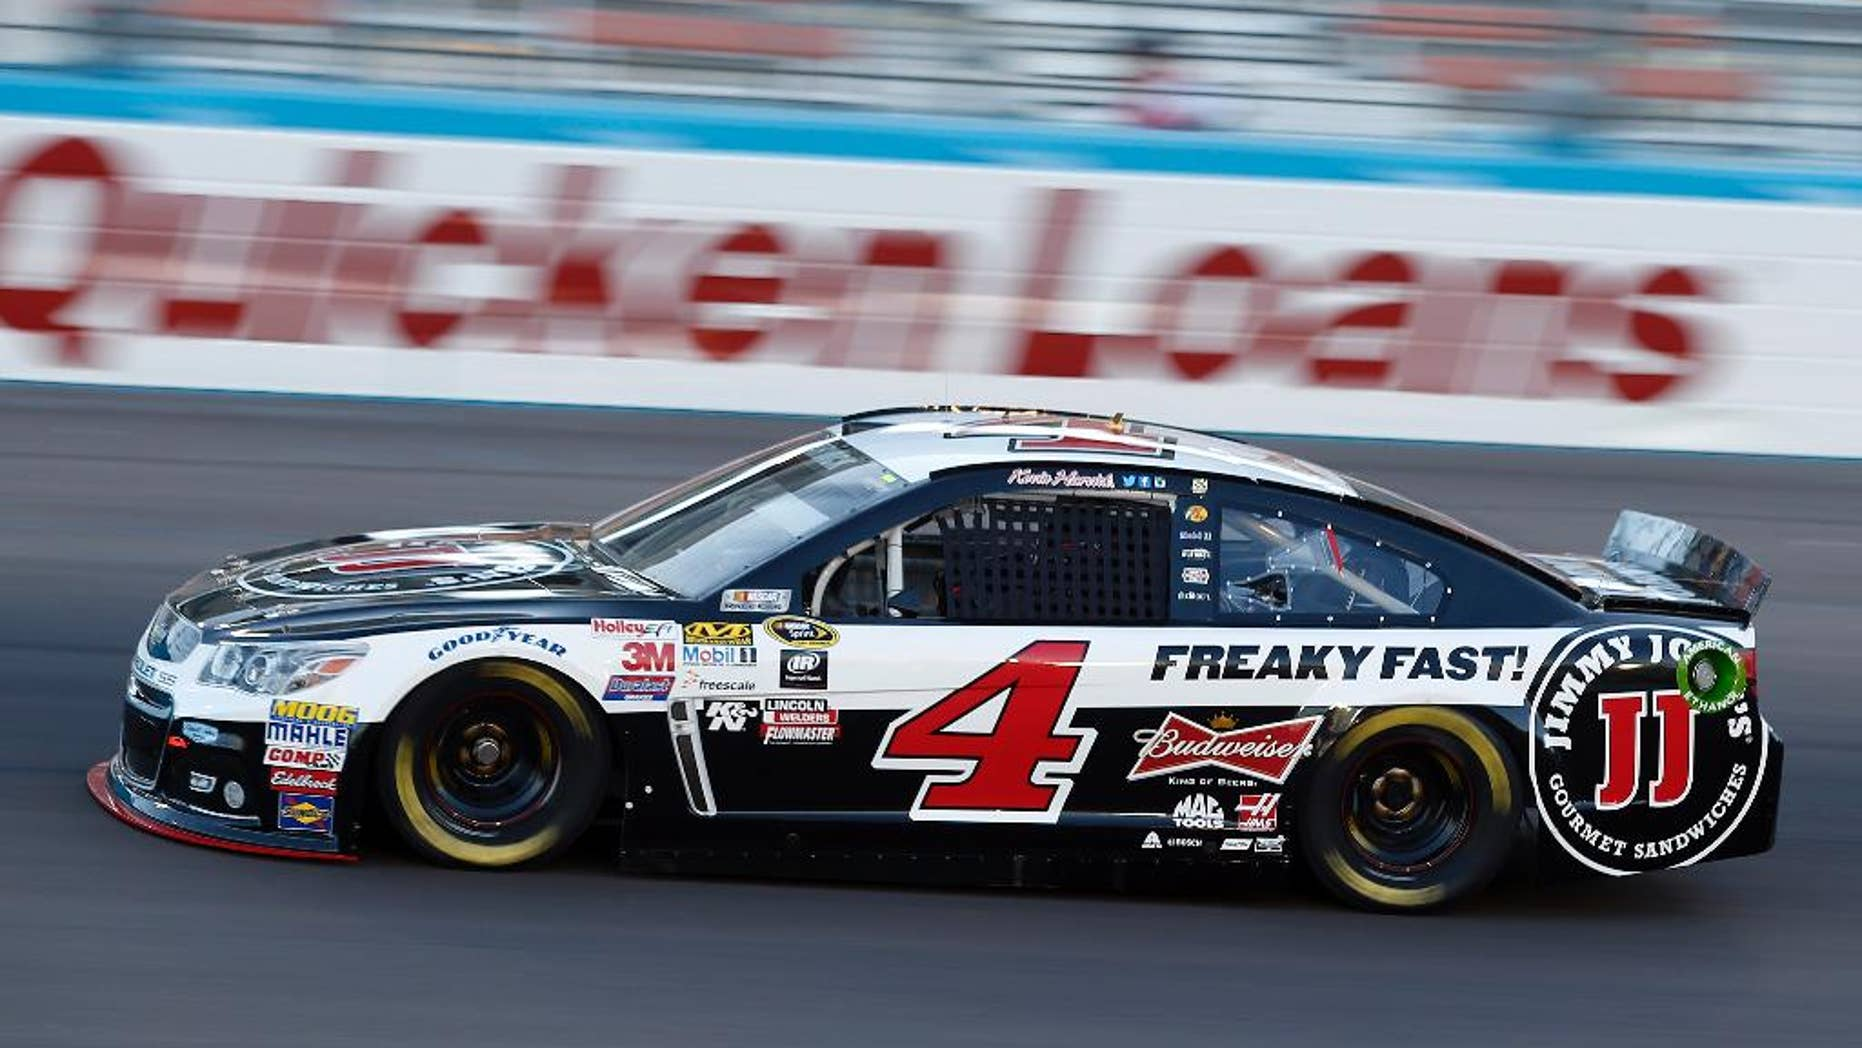 Kevin Harvick drives during qualifying for Sunday's NASCAR Sprint Cup Series auto race, Friday, March 13, 2015, in Avondale, Ariz. Harvick won the pole. (AP Photo/Rick Scuteri)